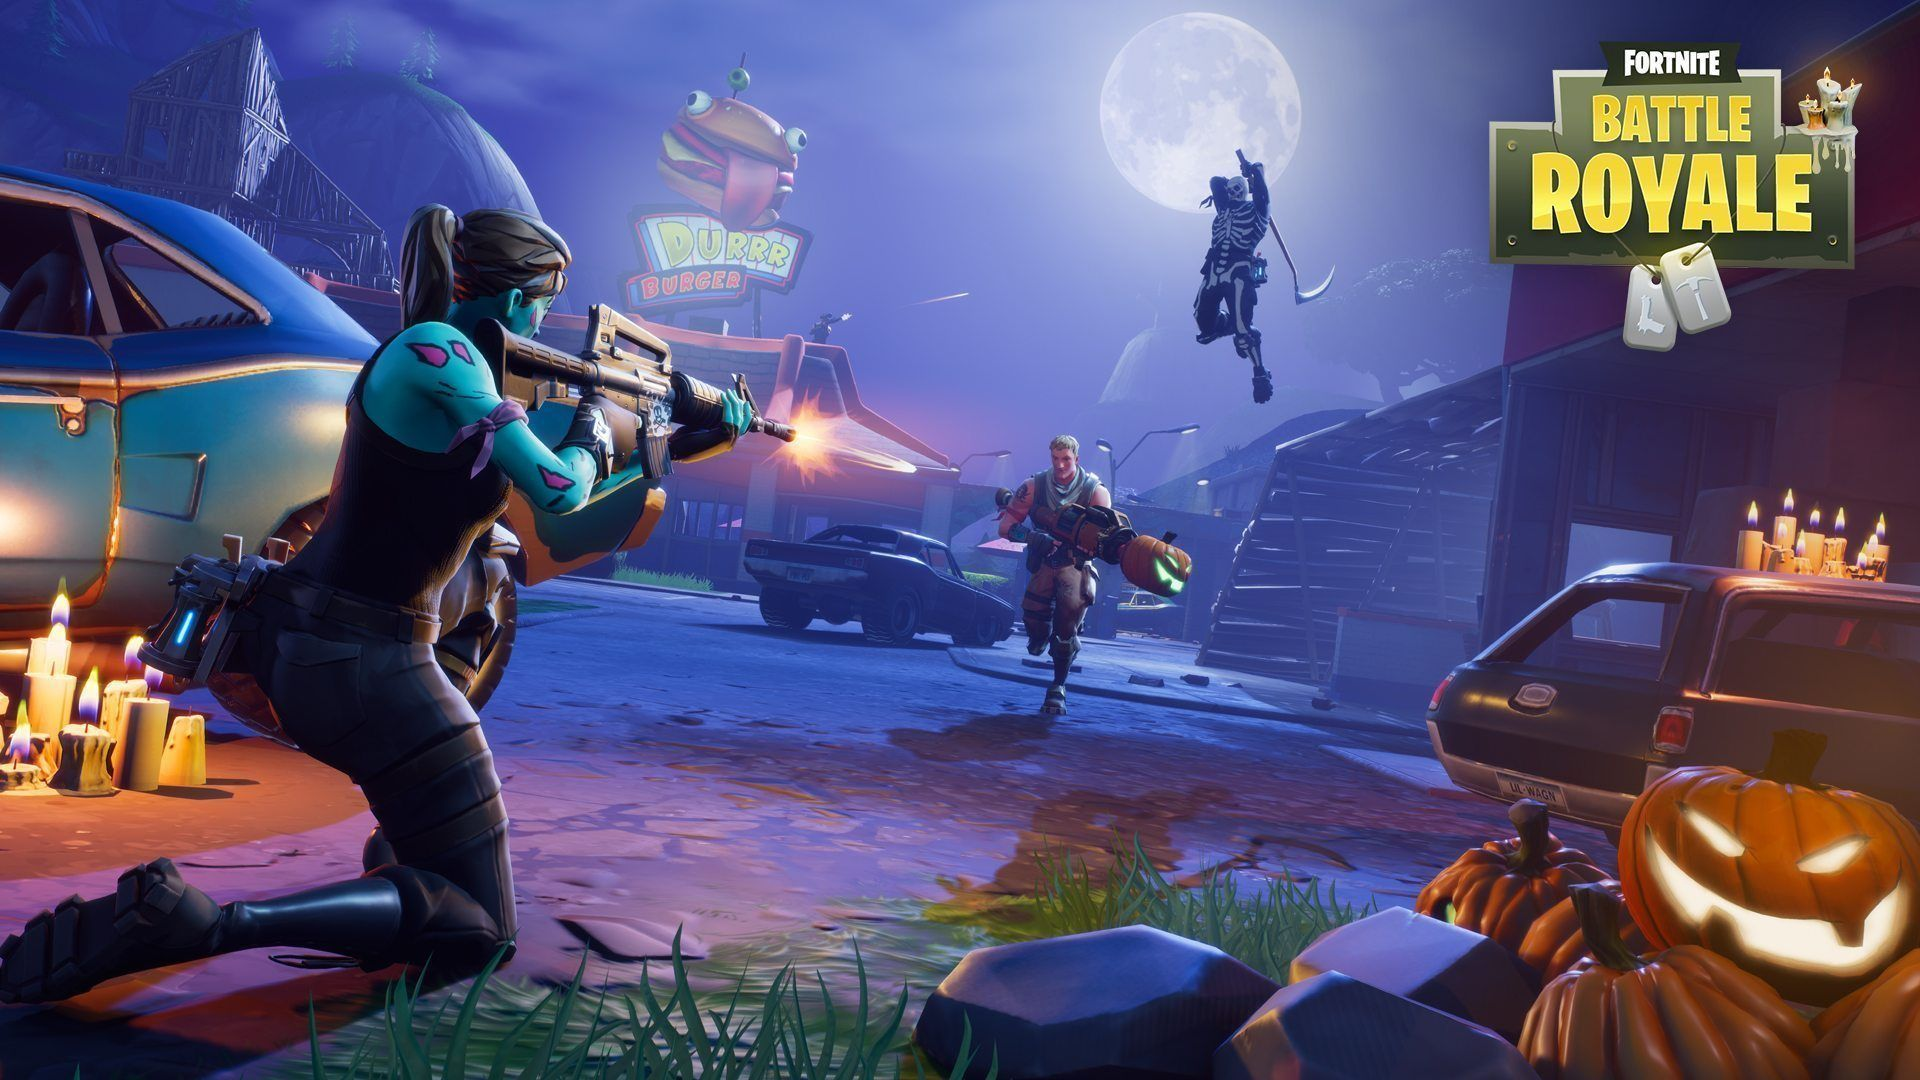 Fortnite Br Wallpapers Top Free Fortnite Br Backgrounds Wallpaperaccess